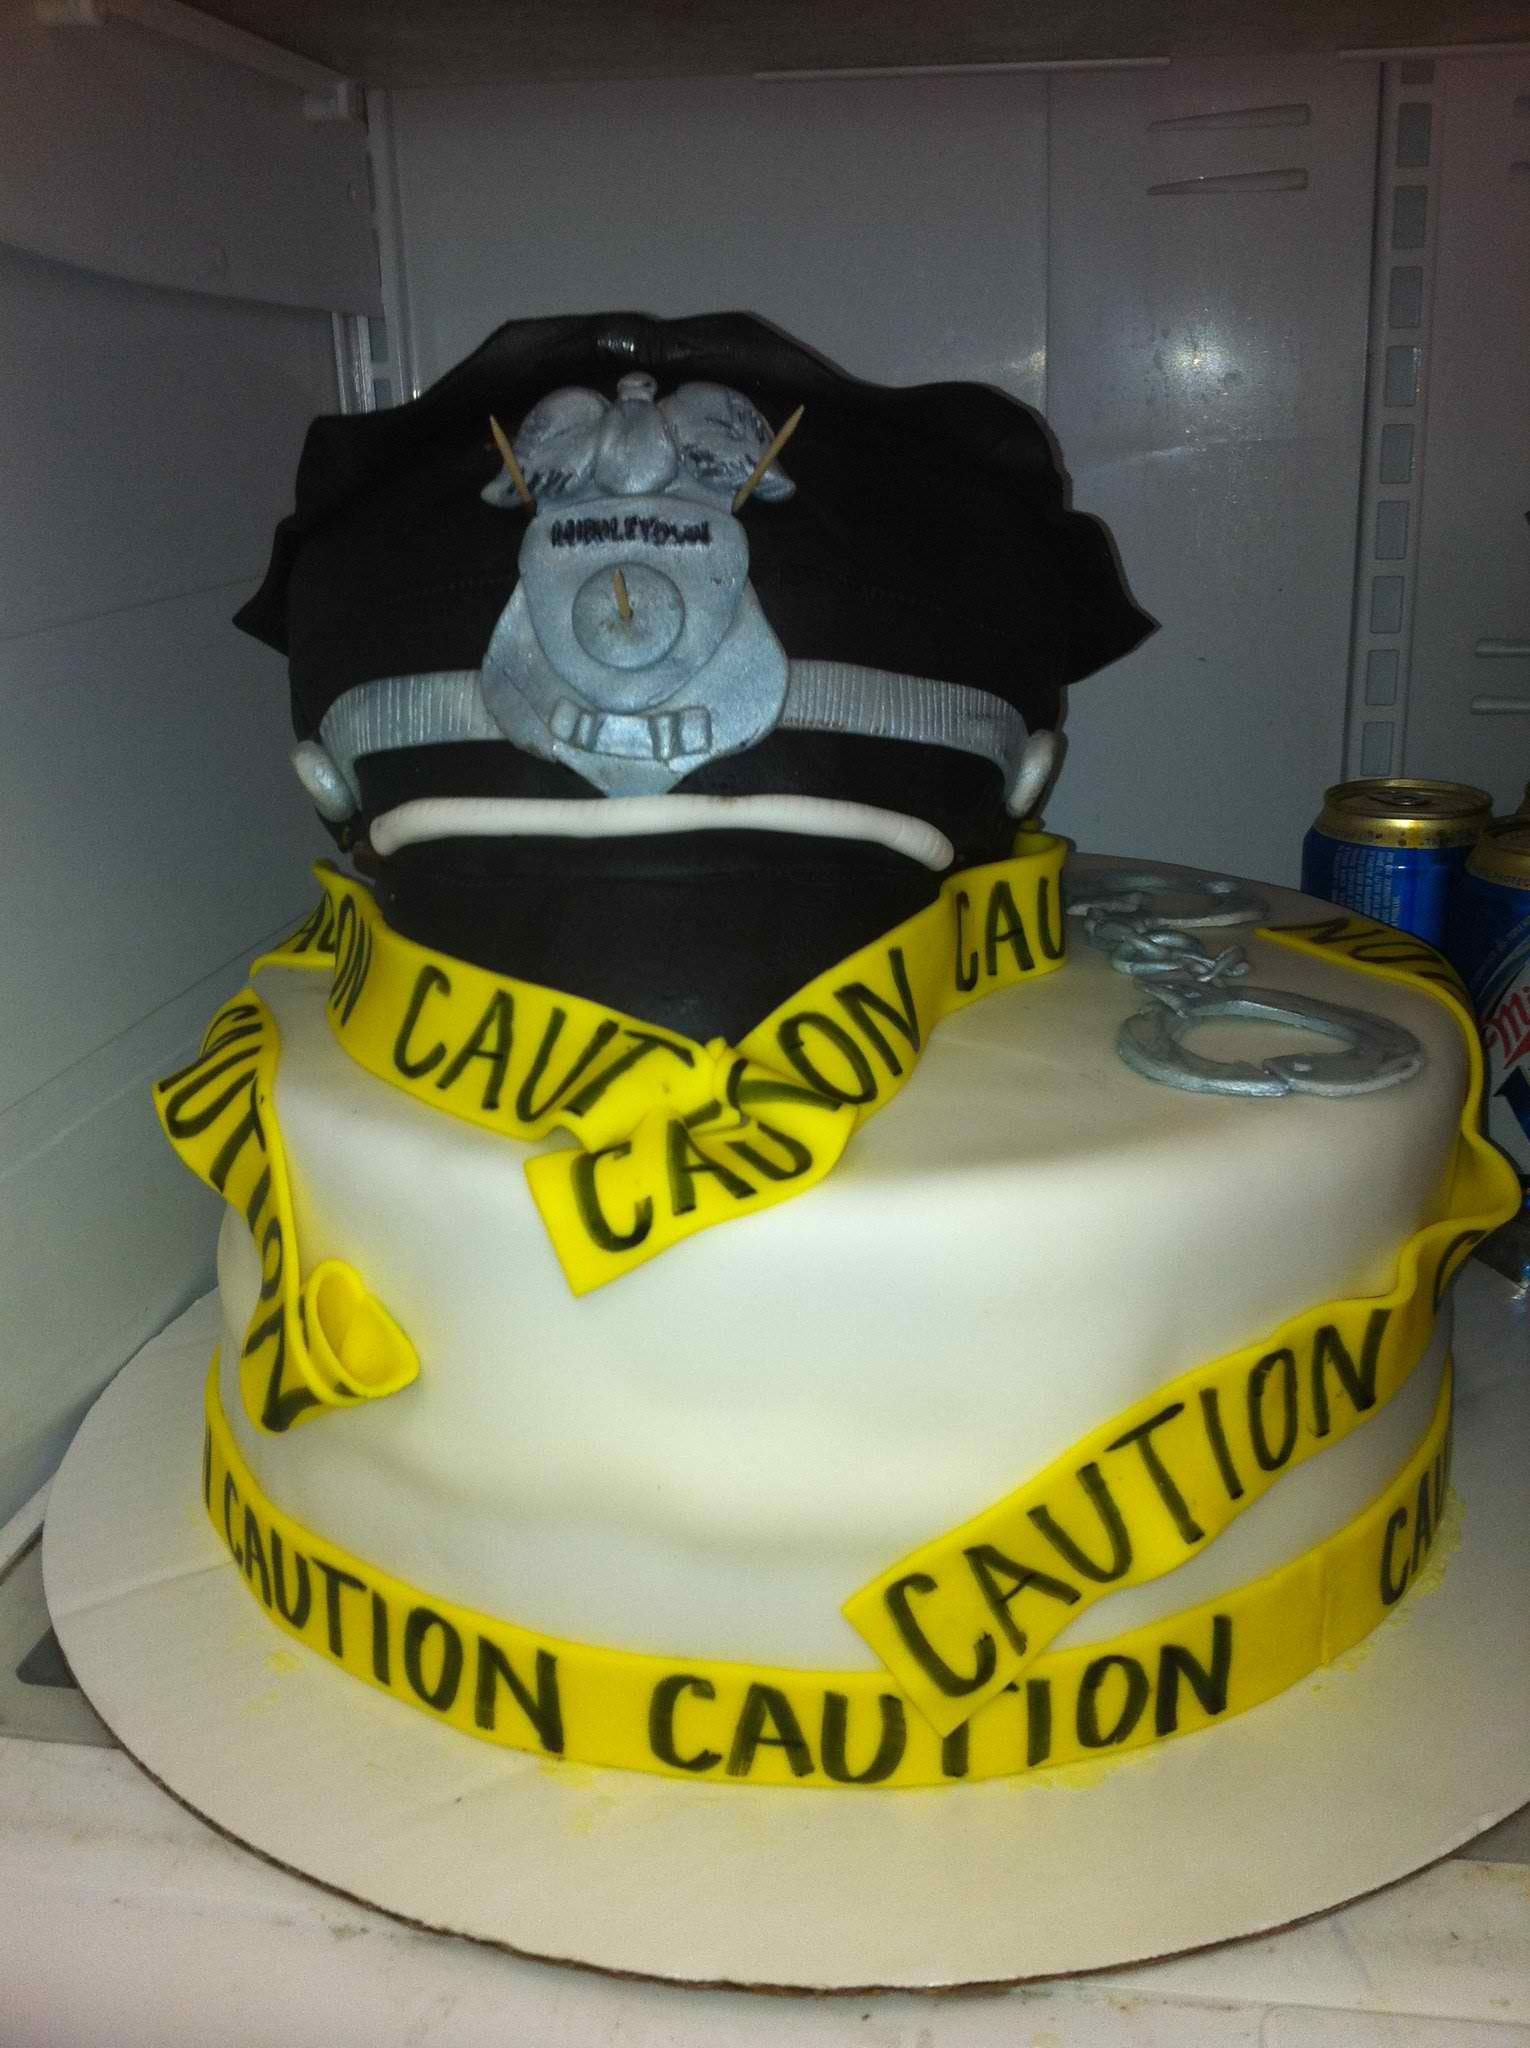 Policeman Cake Design : Police cake Completed cakes Pinterest Police, Cakes ...